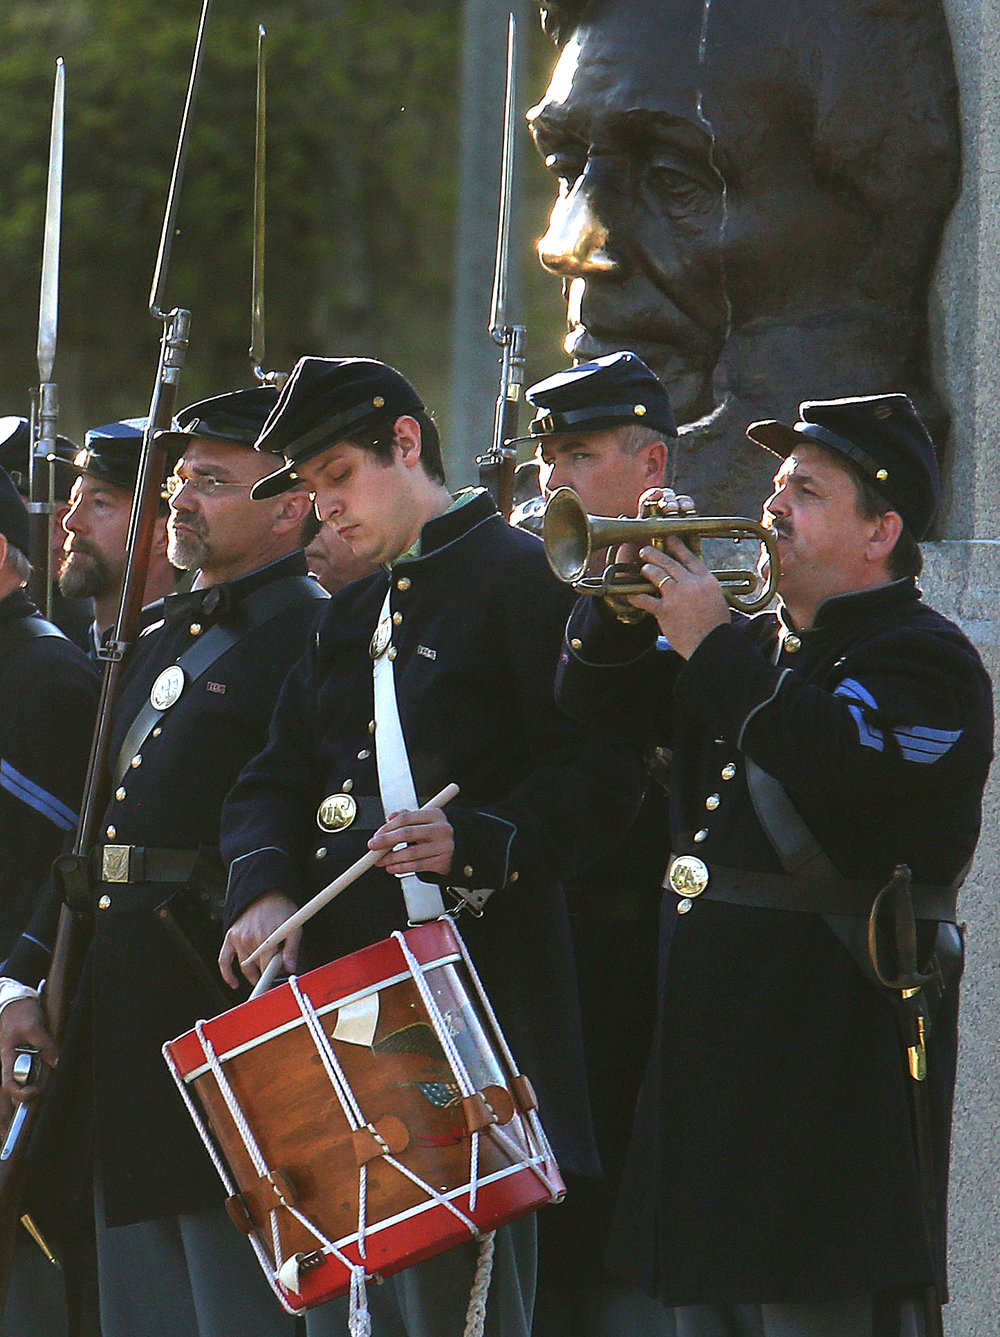 A bugler and drummer from the regiment play during the ceremony. A flag retreat ceremony was presented by the 114th Regiment Illinois Volunteer Infantry (Reactivated) at the Lincoln Tomb in Springfield's Oak Ridge Cemetery on Friday evening, May 1, 2015. An extra large crowd by those from around the country visiting Springfield for the 150th Lincoln Funeral Weekend had perfect weather for the ceremony. David Spencer/The State Journal-Register